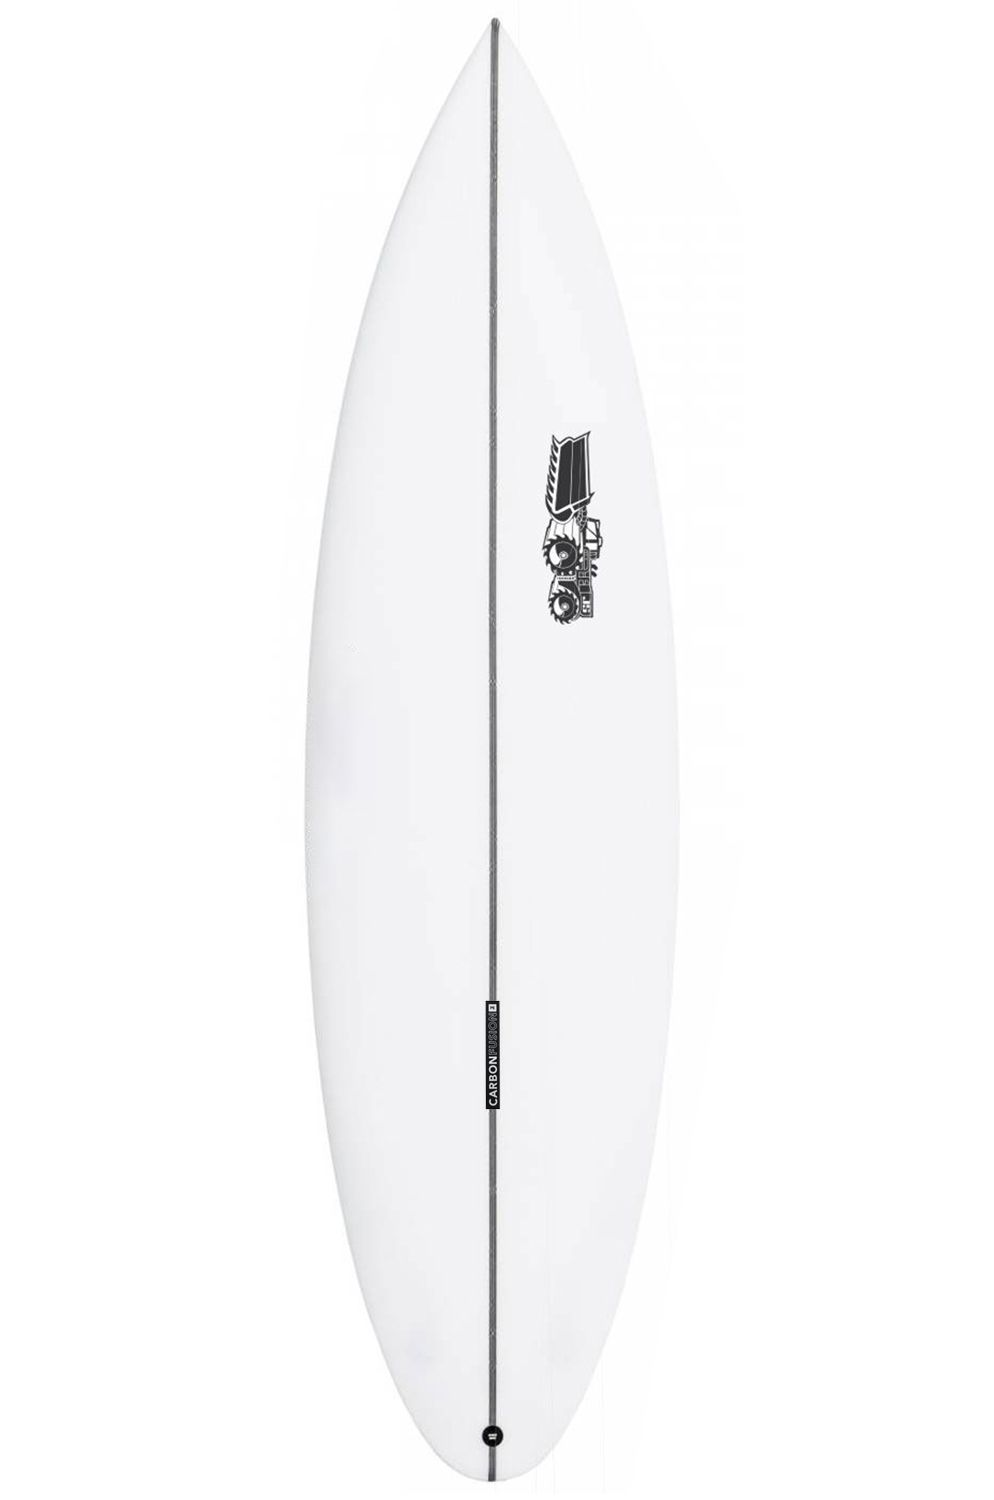 JS Surf Board 6'1 MONSTA 2020 PERFORMANCE PE Round Pin Tail - White FCS II Multisystem 6ft1